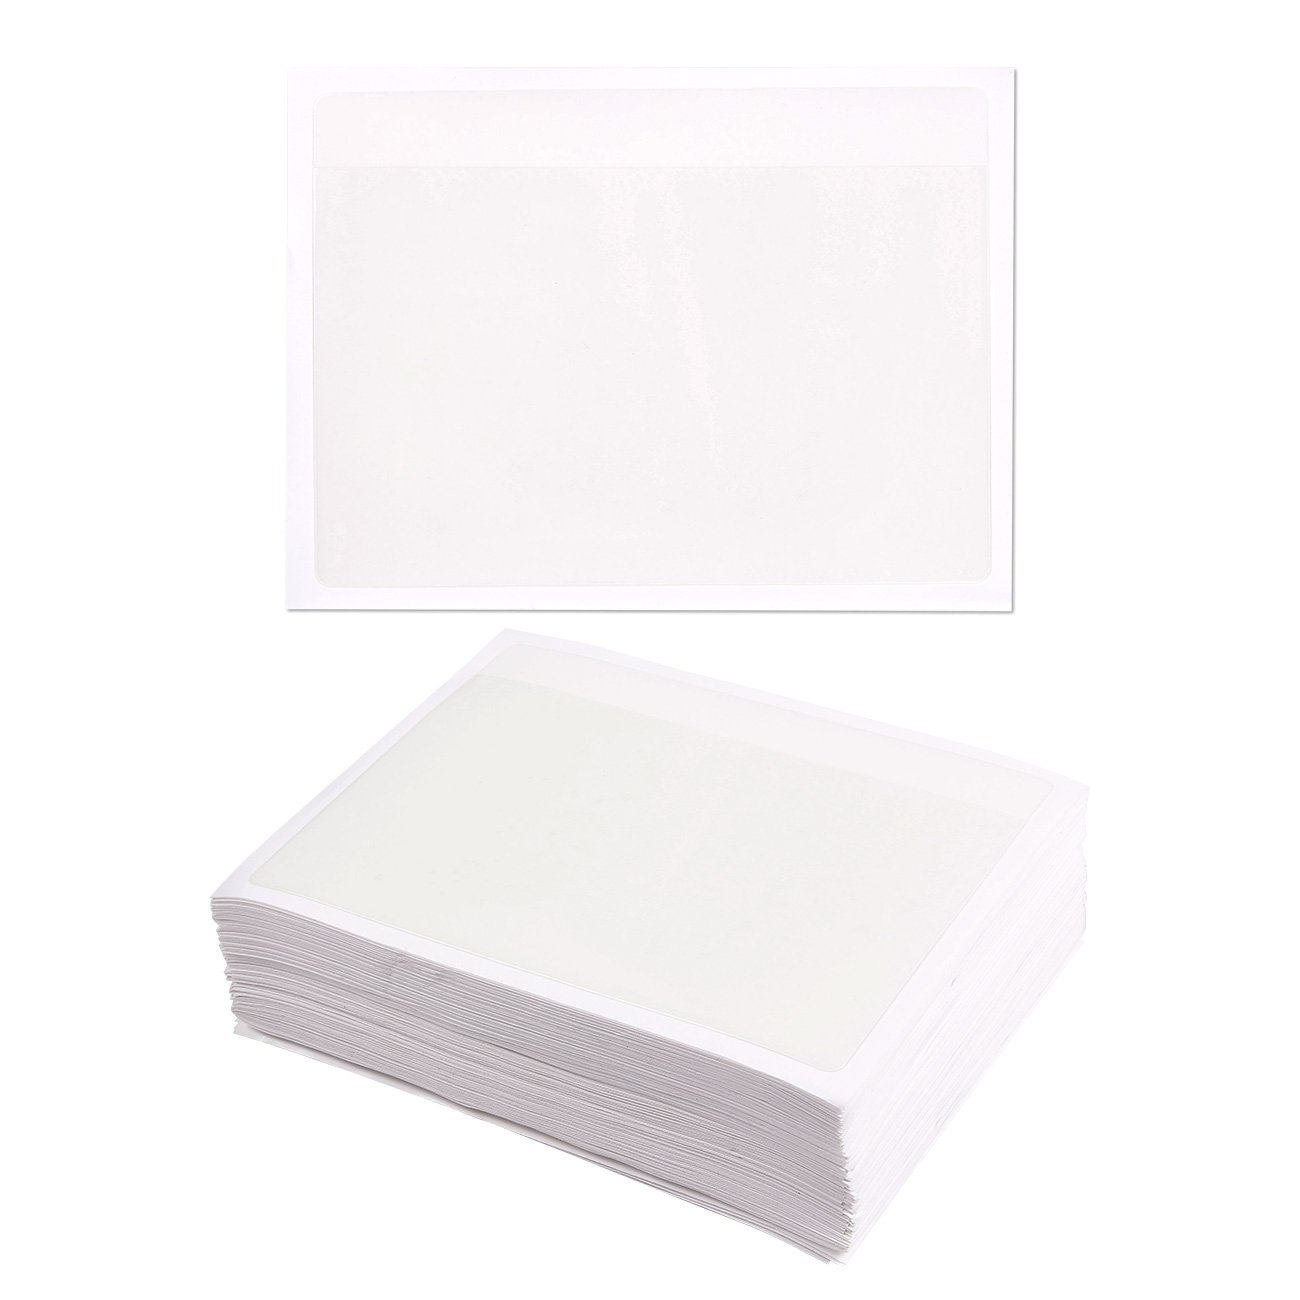 Ideal for Organizing and Protecting Your Index Cards Crystal Clear Plastic 4.6 x 6 Inches 100-Pack Self-Adhesive Index Card Pockets with Open Sides